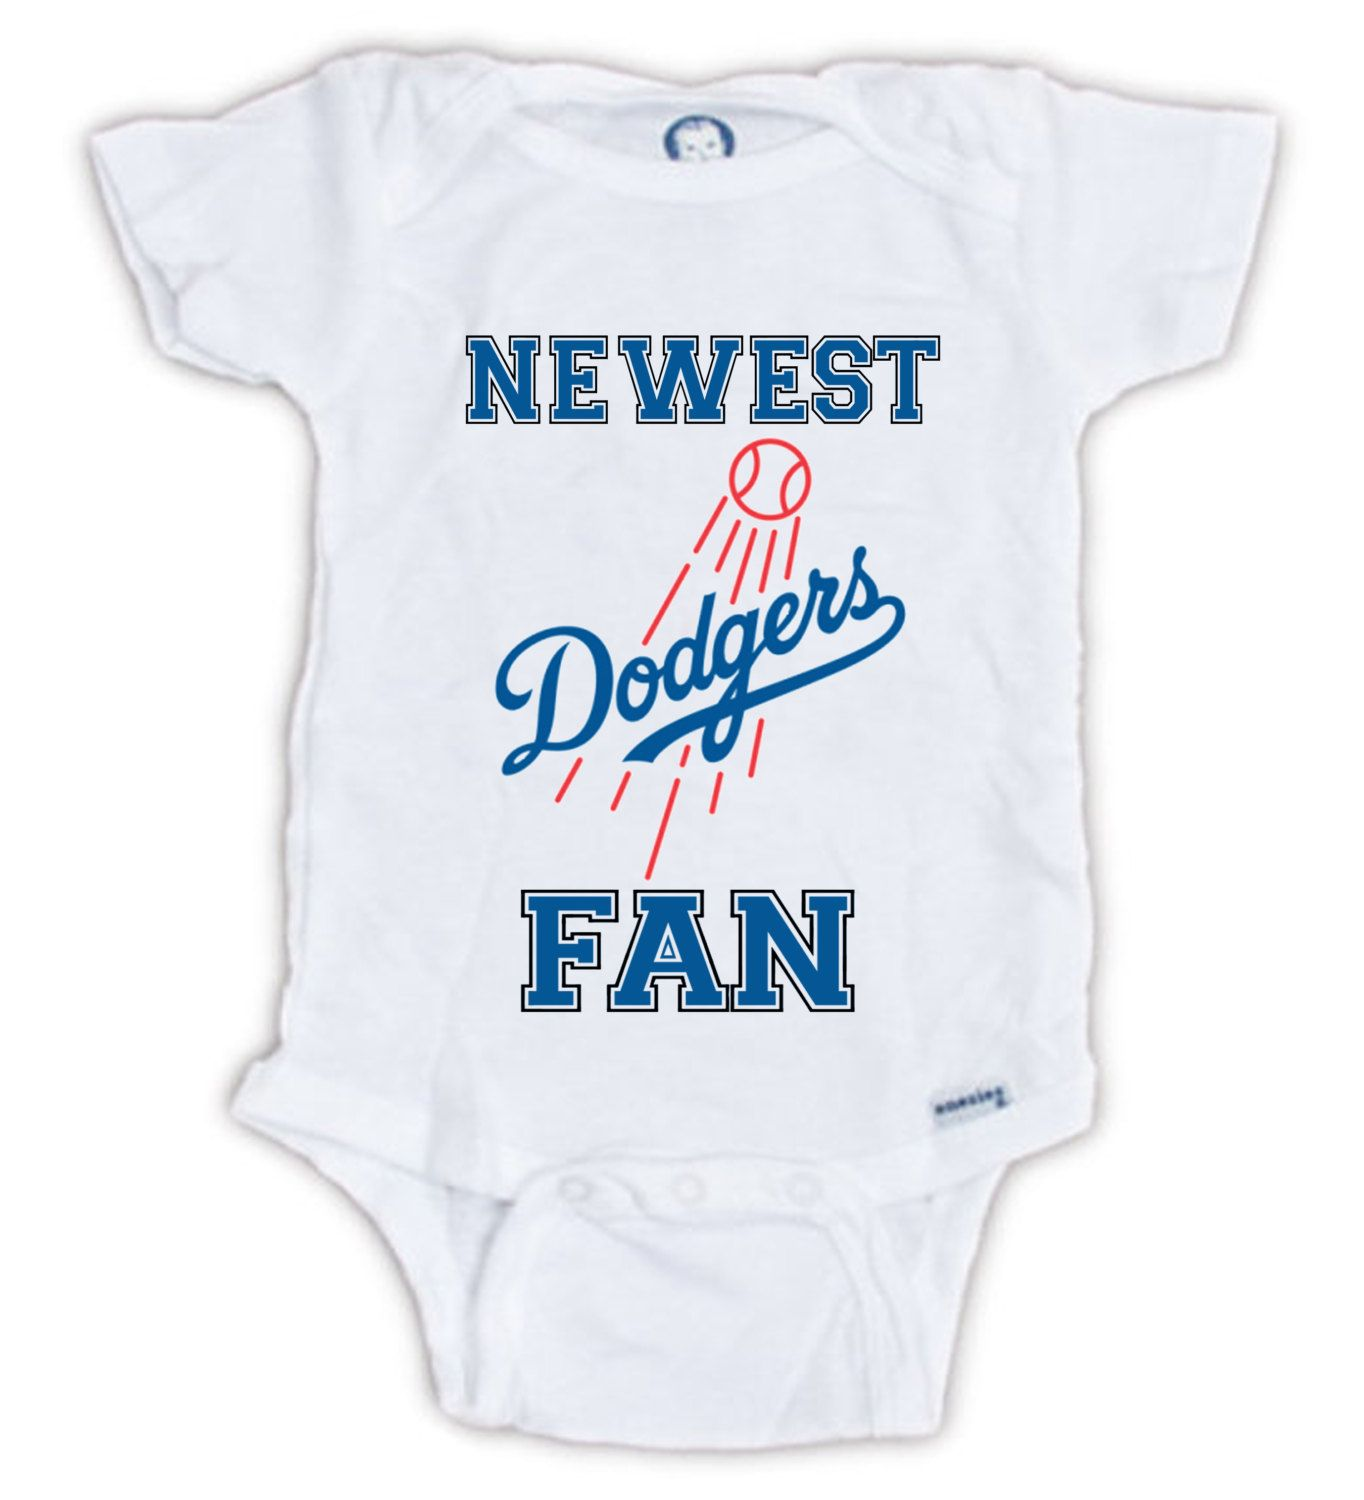 Los Angeles DODGERS FAN Baby esie Dodgers Bodysuit Newest